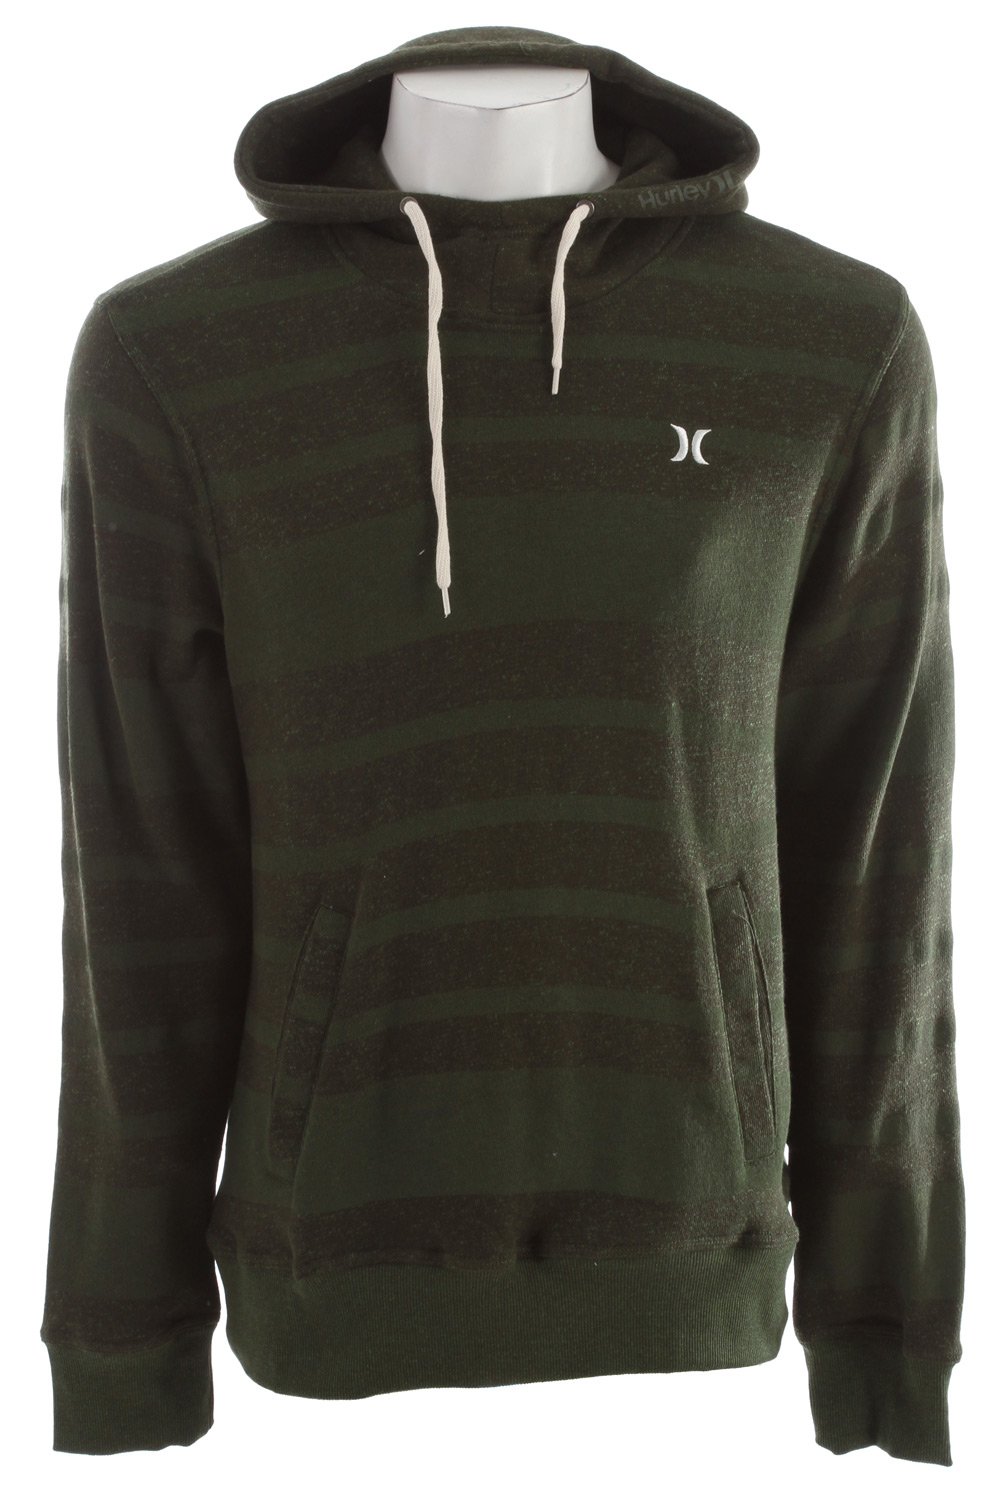 Surf Key Features of the Hurley Retreat All Stripe Hoodie: Regular Fit 60% Cotton/40% Polyester Hooded pullover fleece with welt pockets, engineered stripe, contrast drawstrings and embroidery on chest. - $41.95